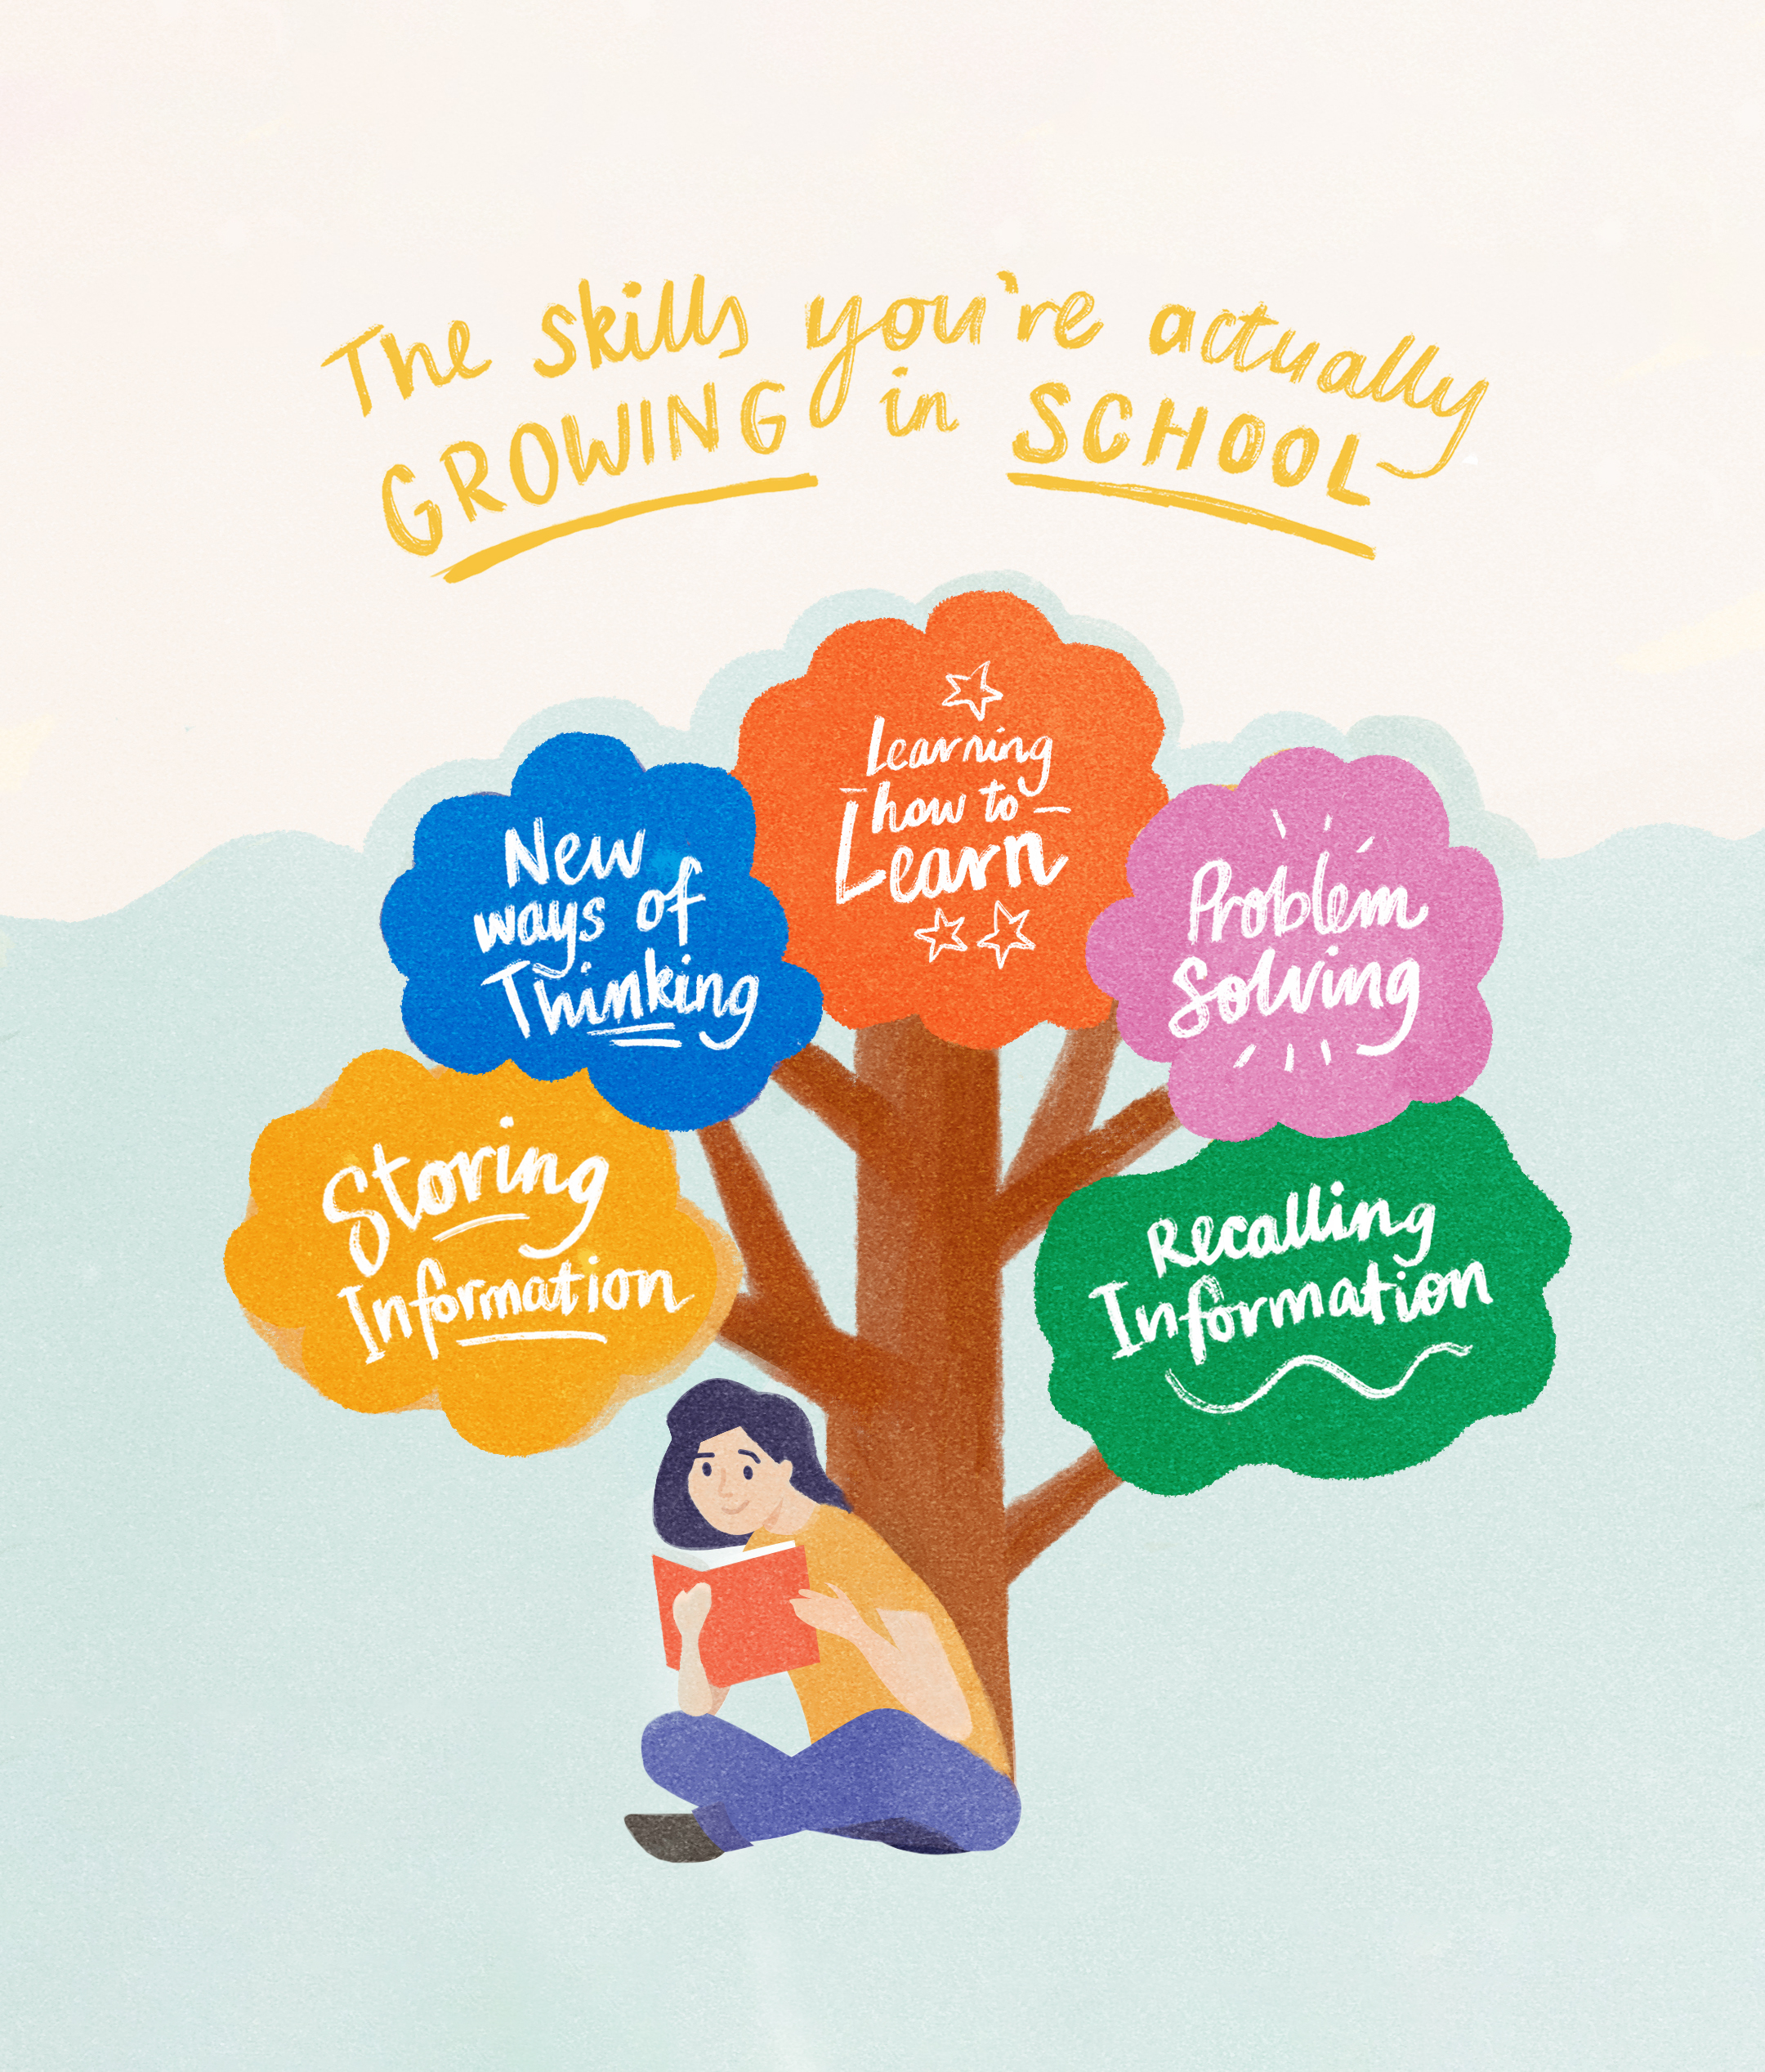 illustration of a girl sitting under a tree with branches that show different skills being learnt at school.